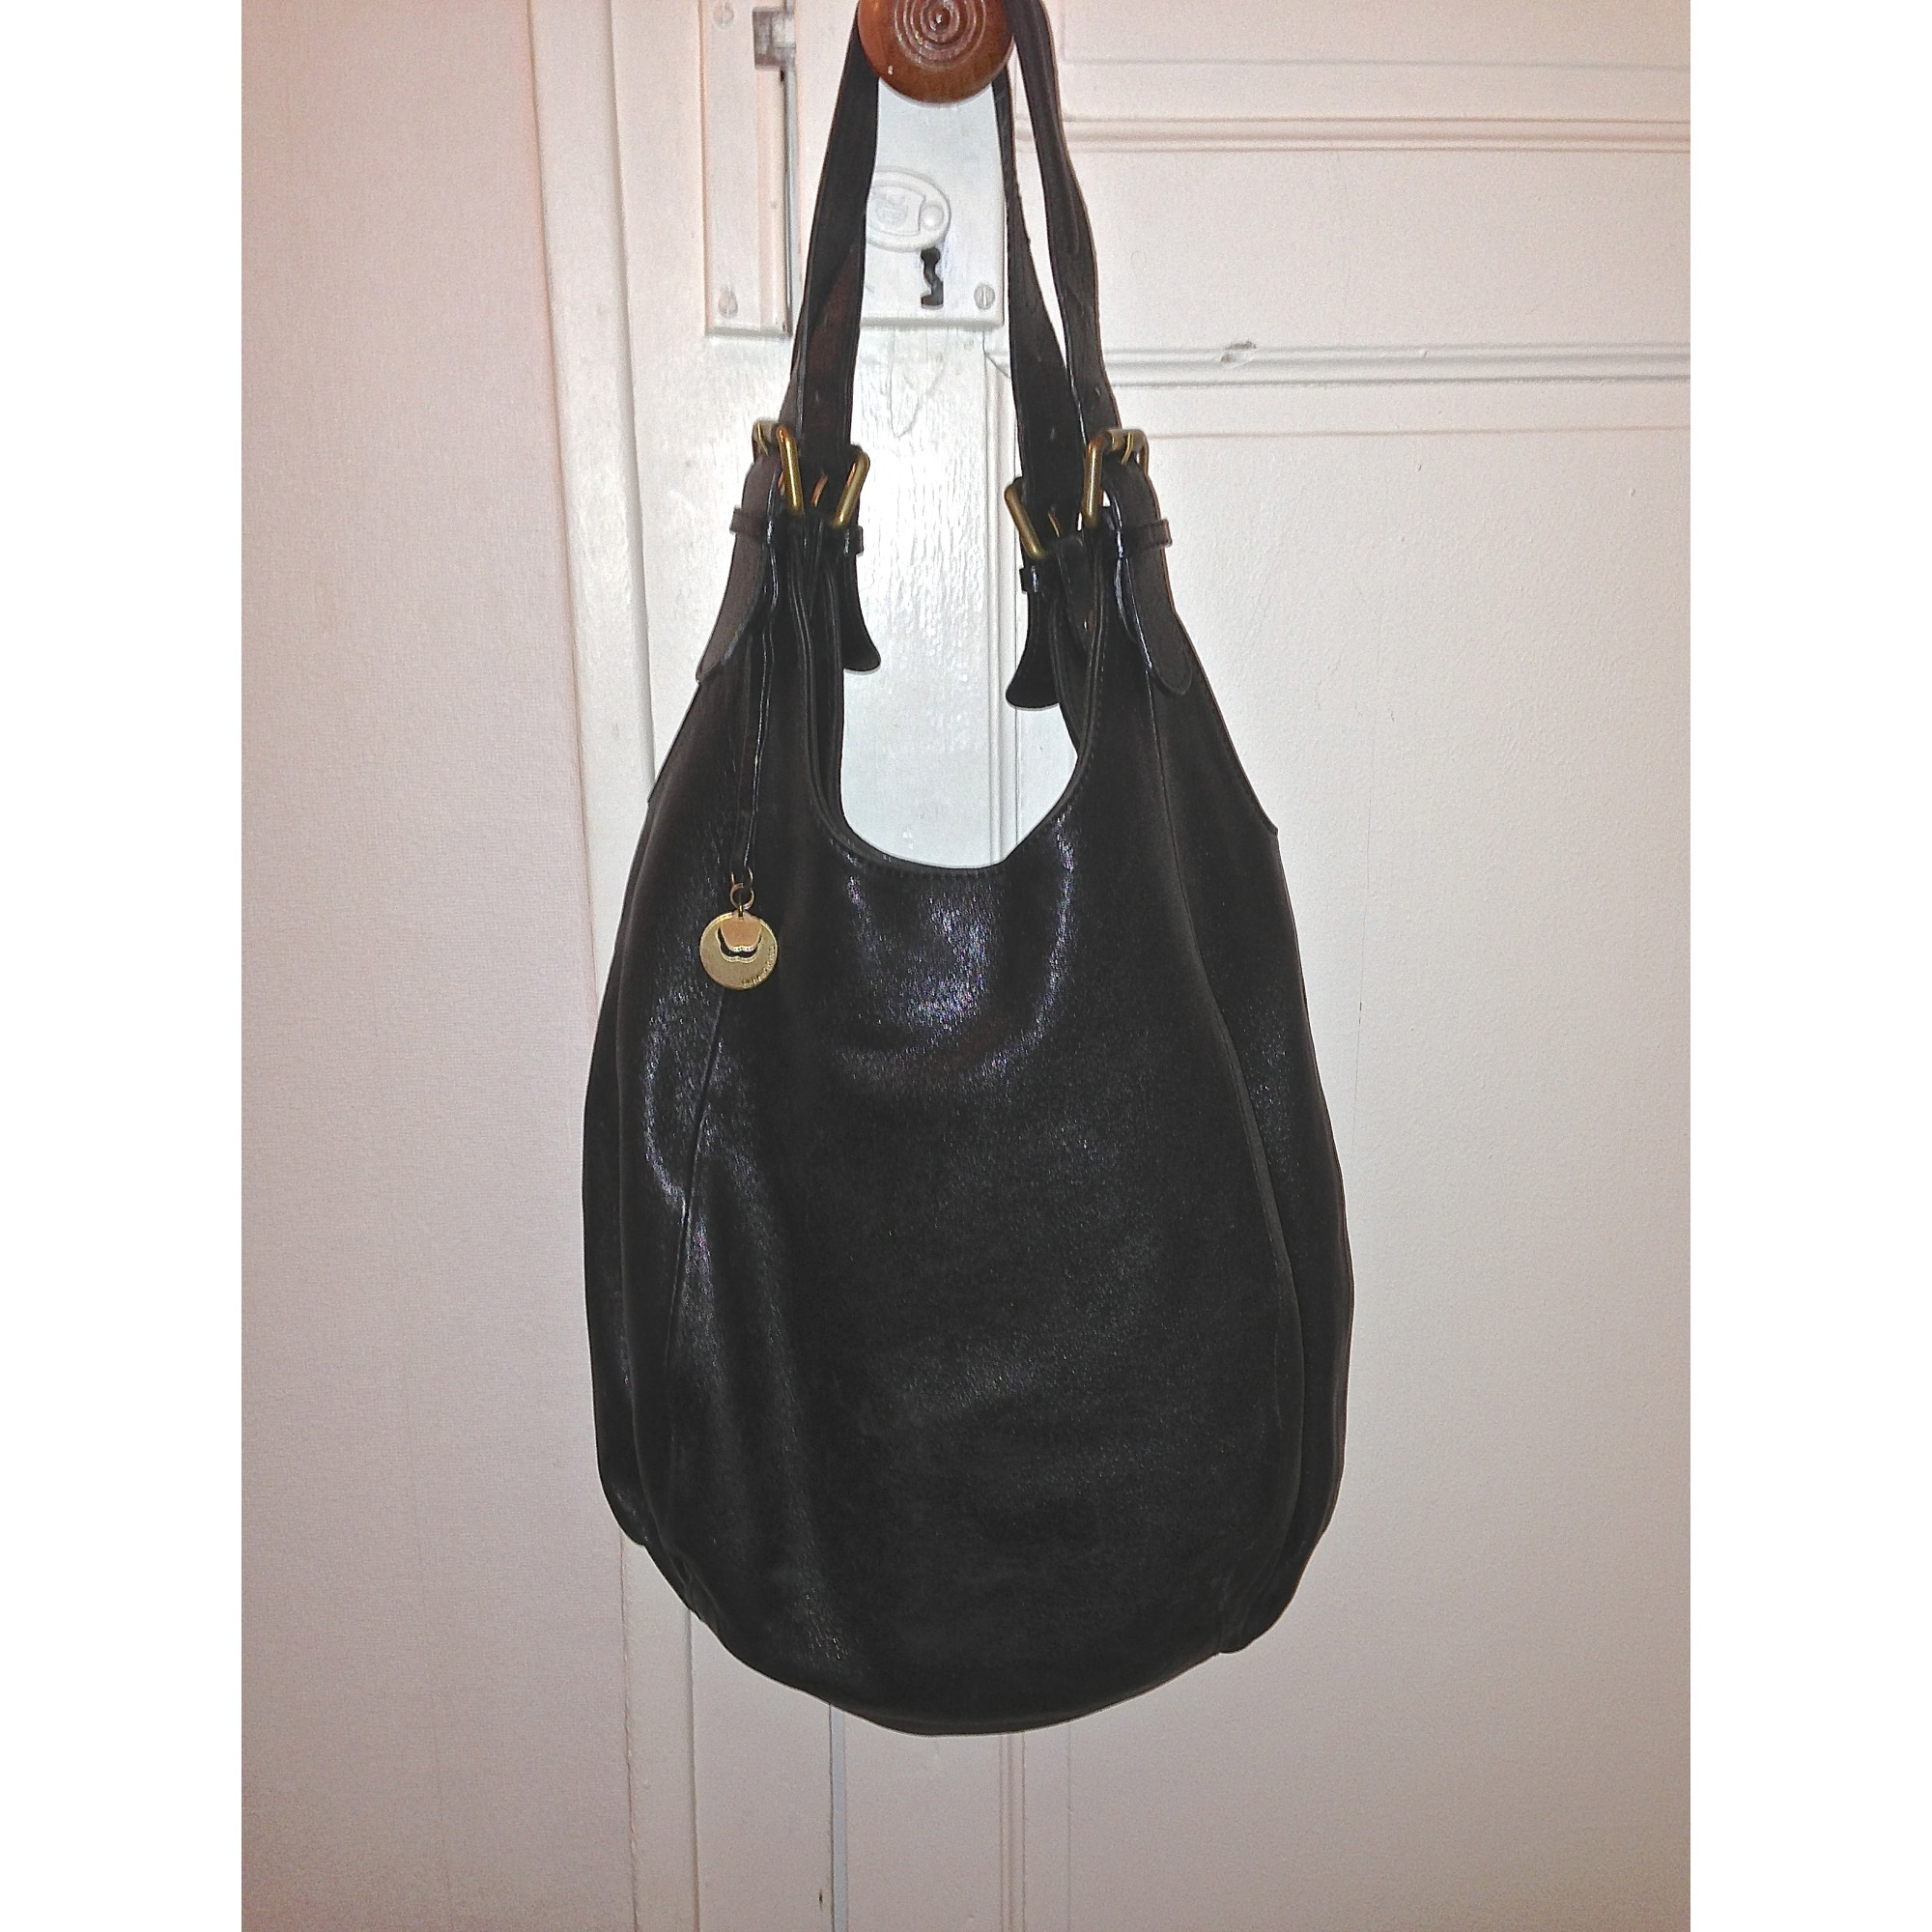 sac longchamp modele moon